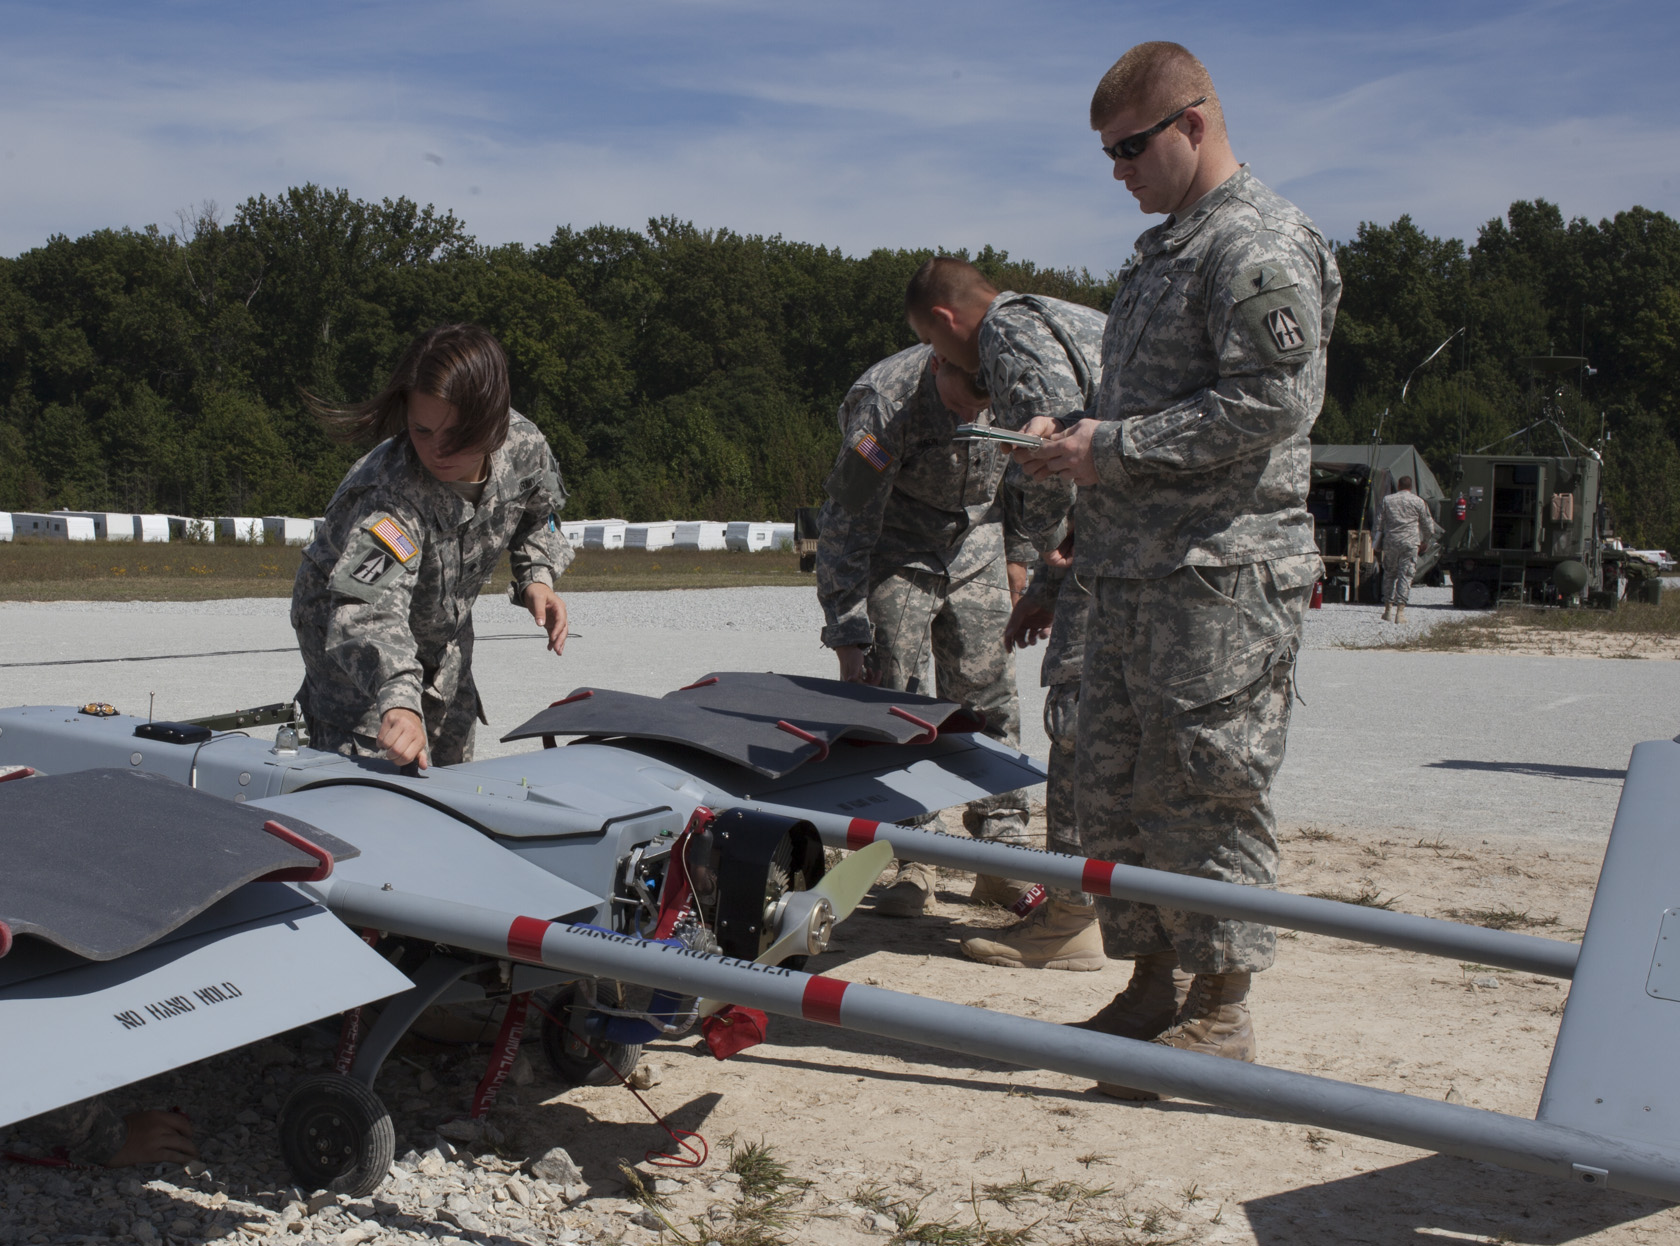 Soldiers with Company B, 76th Special Troops Battalion, Indiana Army National Guard, and the Army 3rd Brigade, 1ID conduct preflight checks on an RQ 7B Shadow Unmanned Aerial System prior to launching at Jefferson Proving Ground, near Madison, Ind.